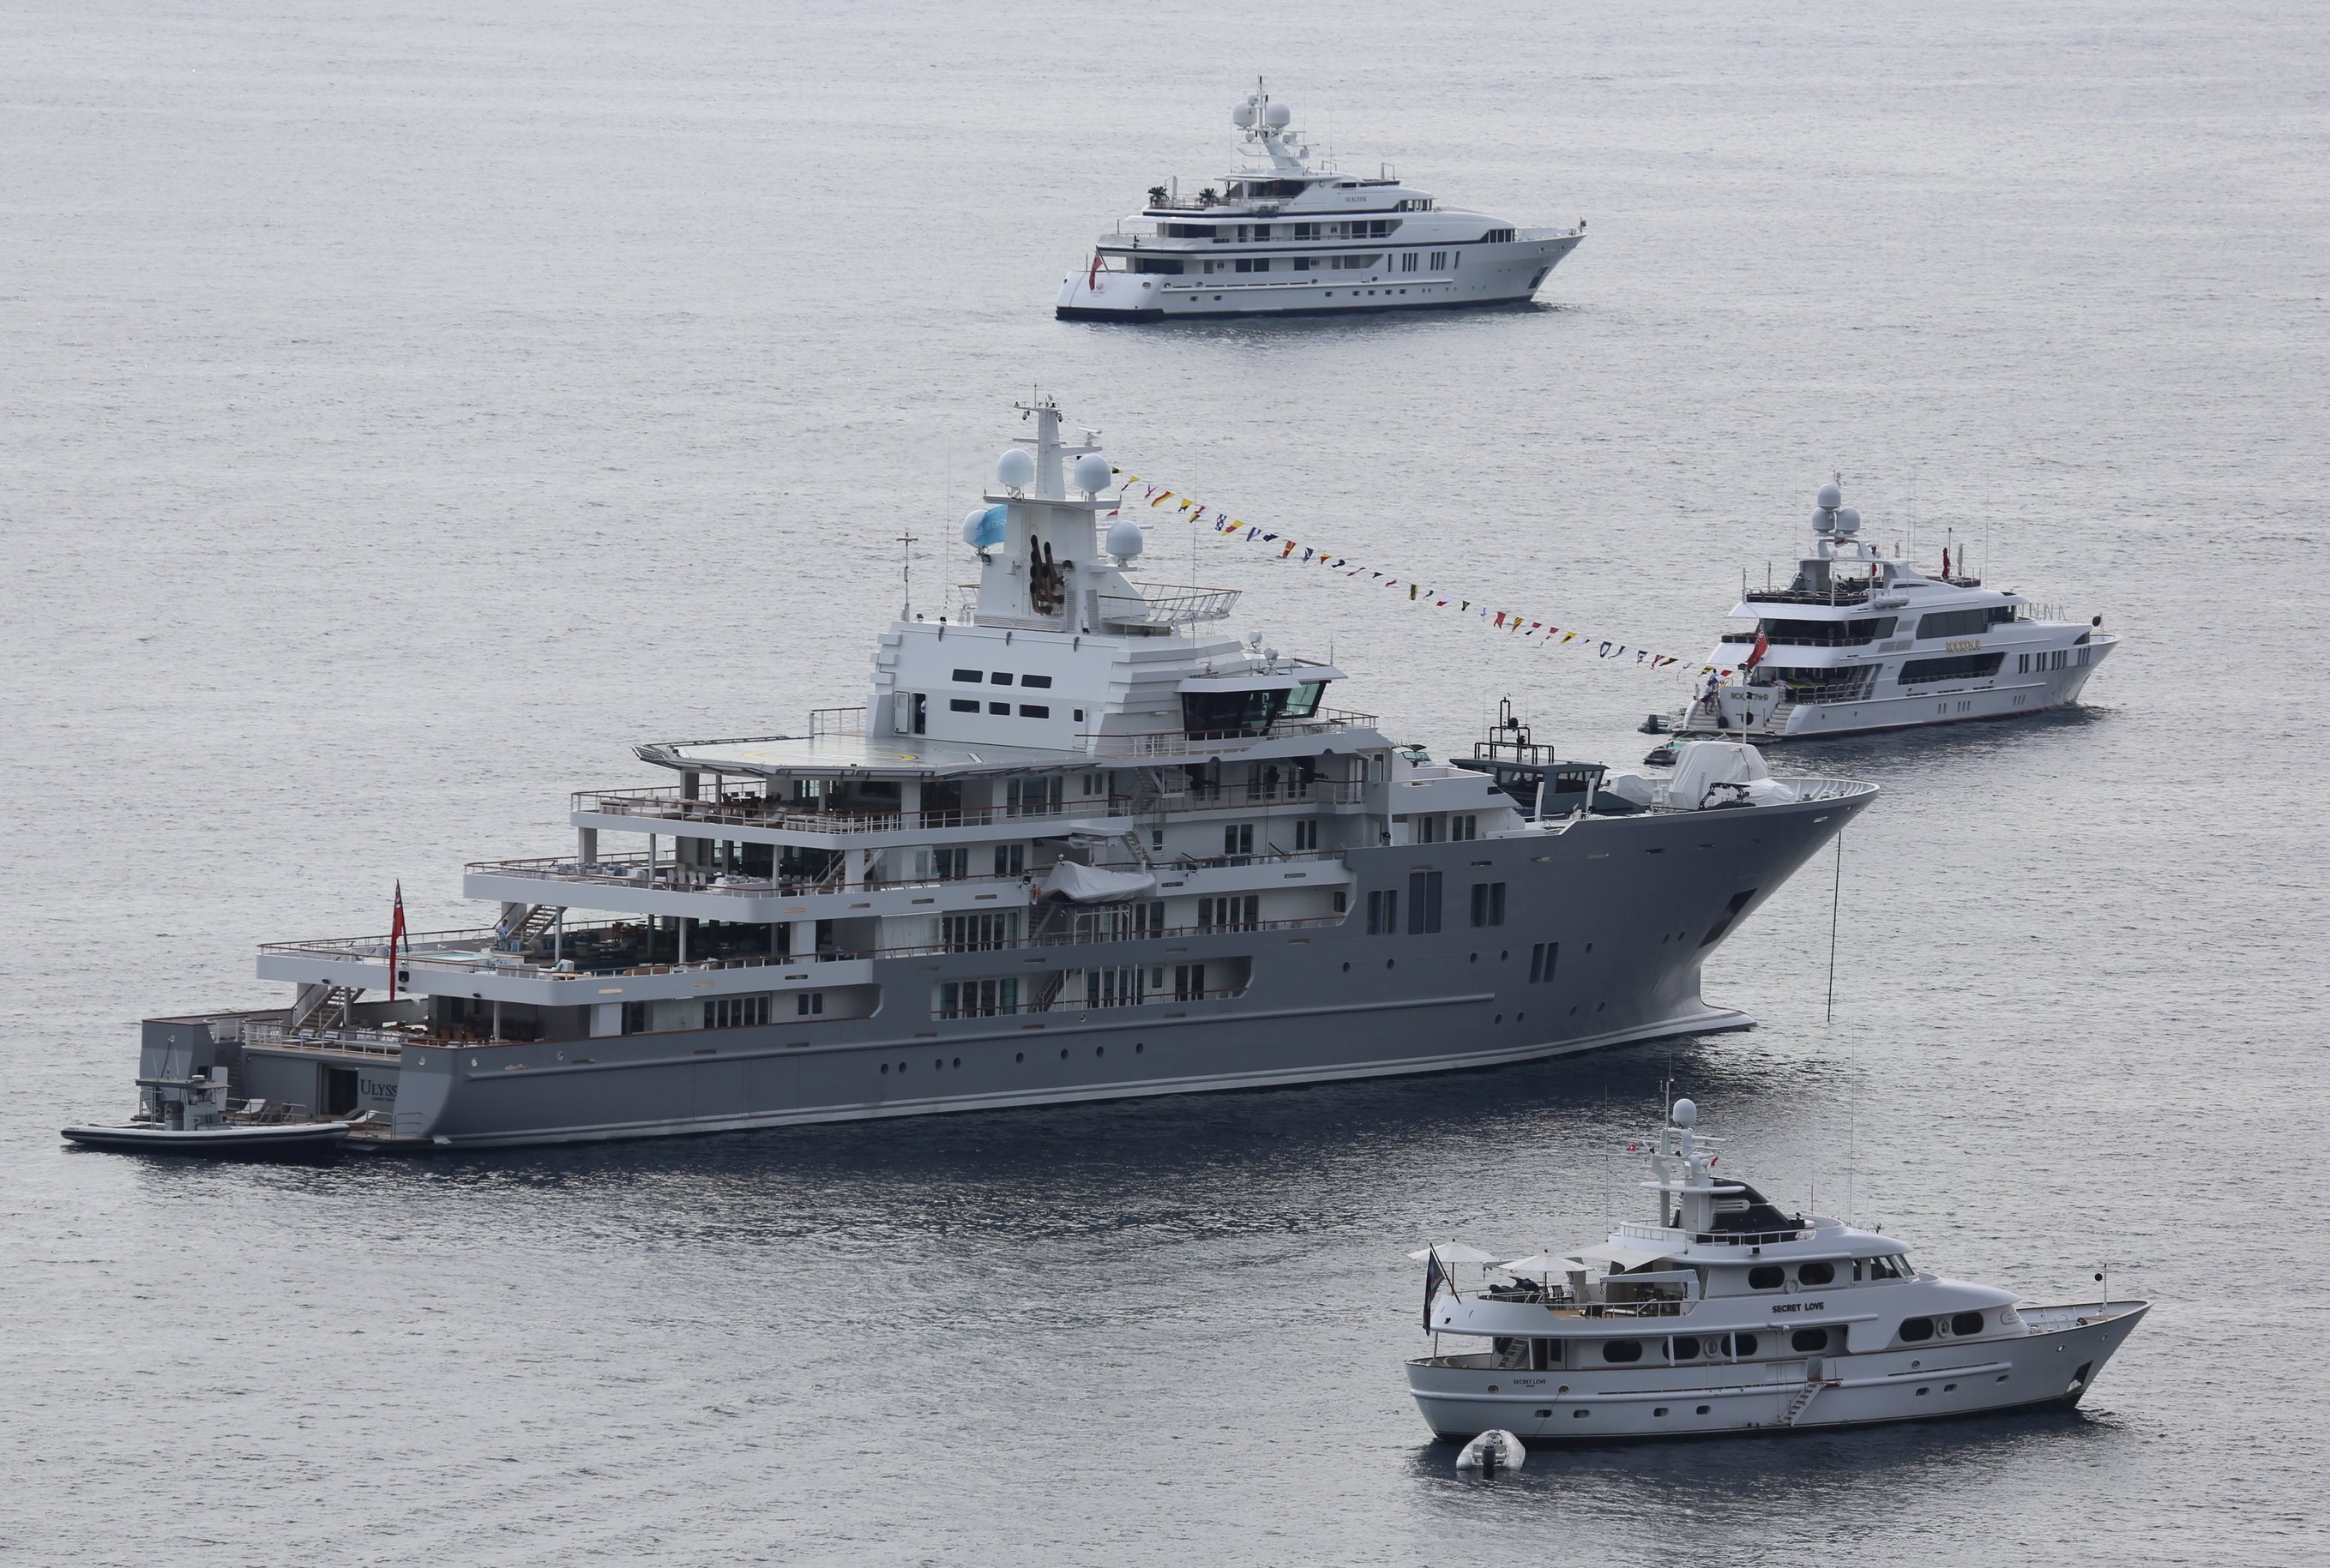 The 6 largest yachts delivered in 2016